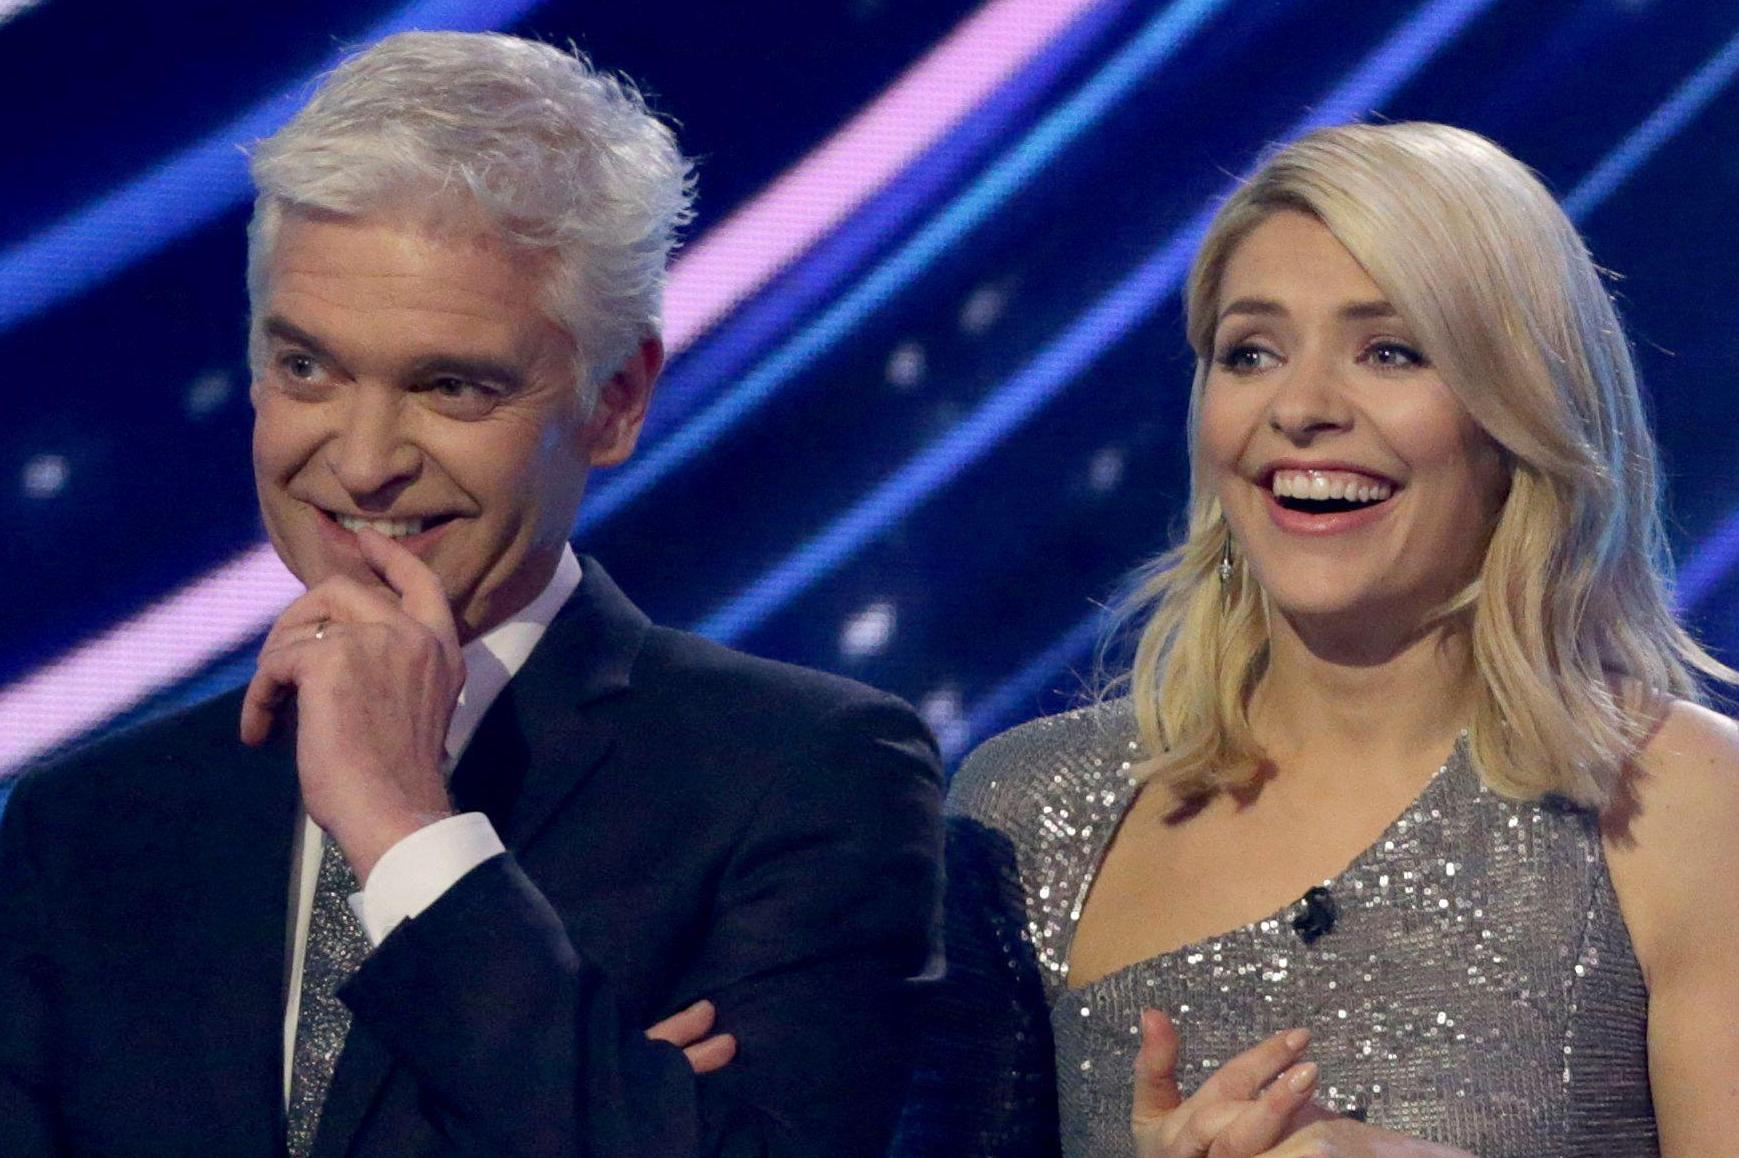 When does Dancing On Ice start, which celebrities are in the line-up and who are the judges?